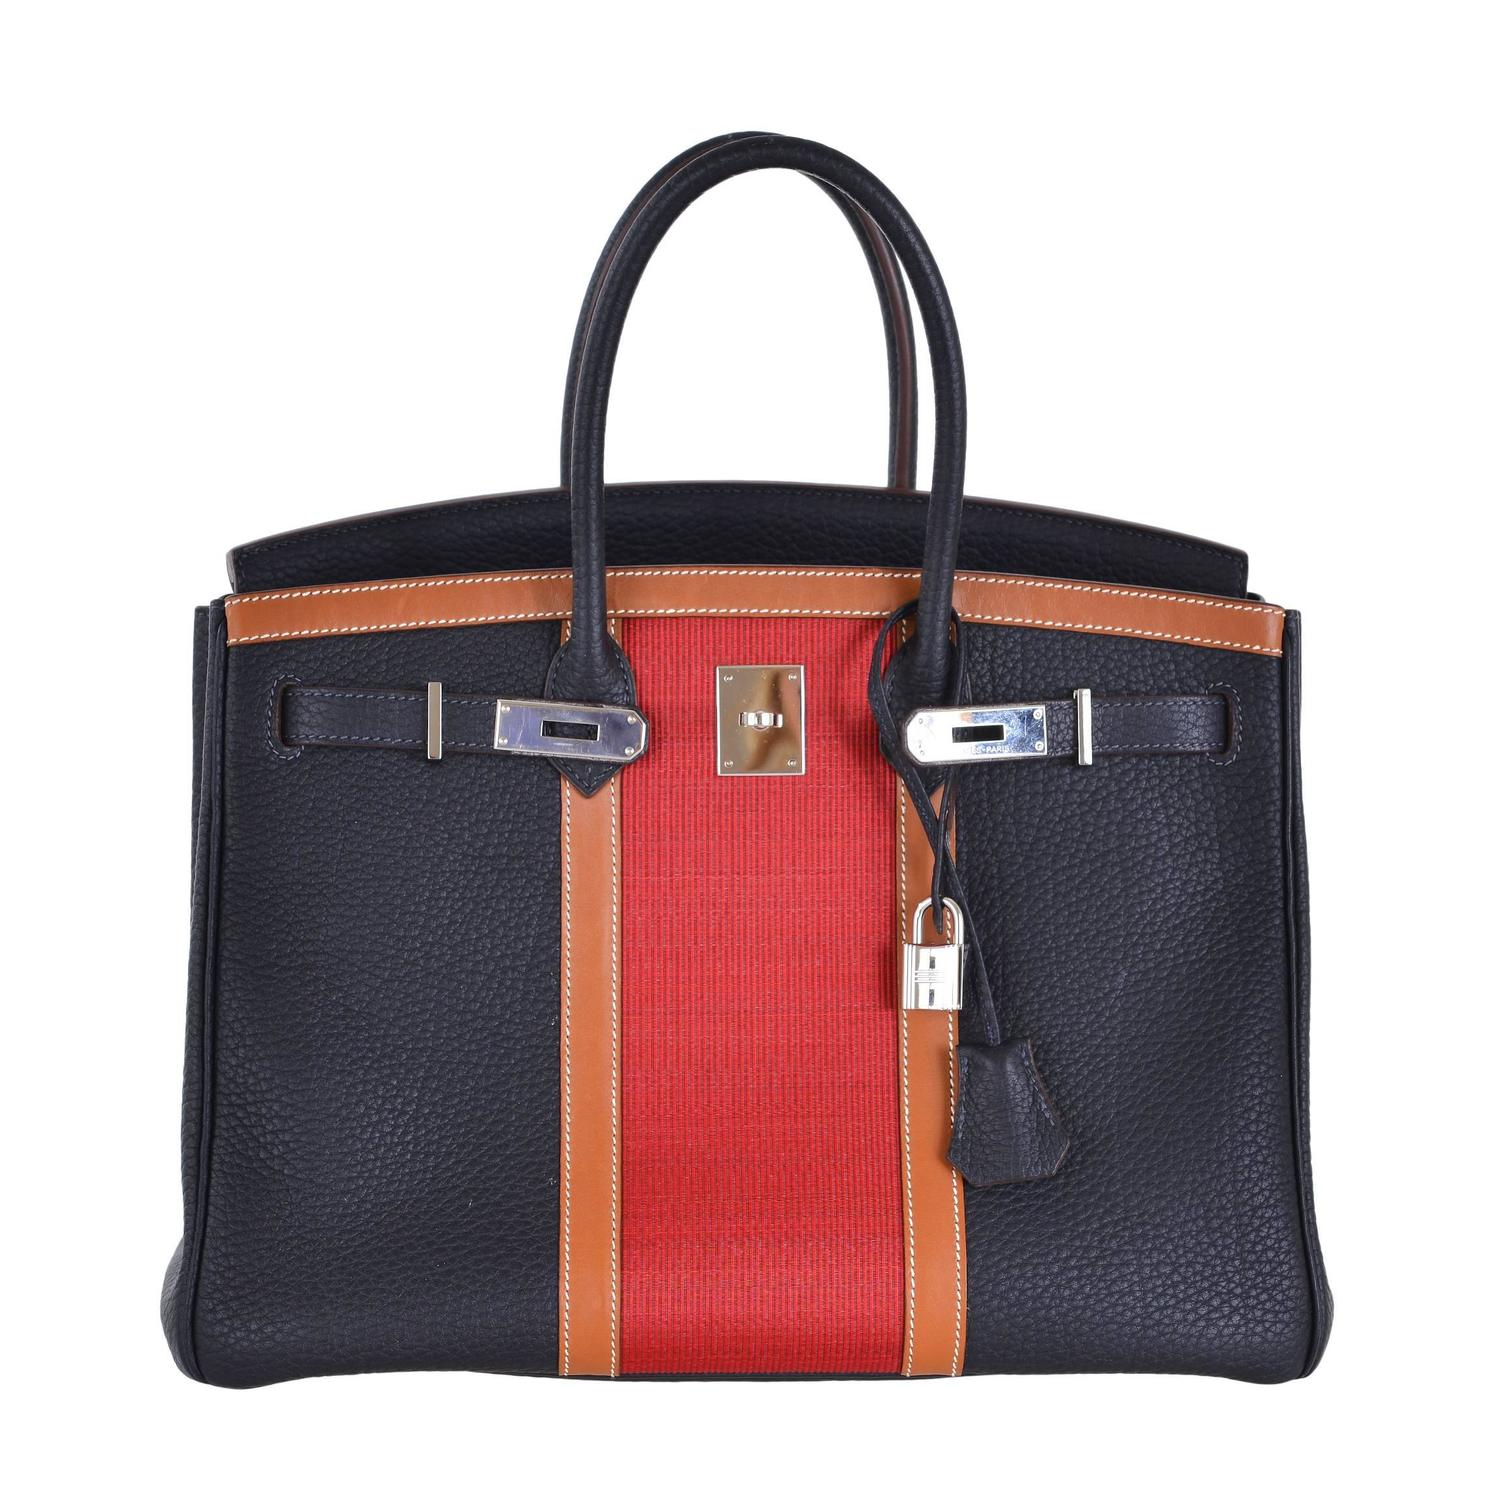 how much are birkin bags - new hermes kelly longue wallet anemone clutch chevre leather ...